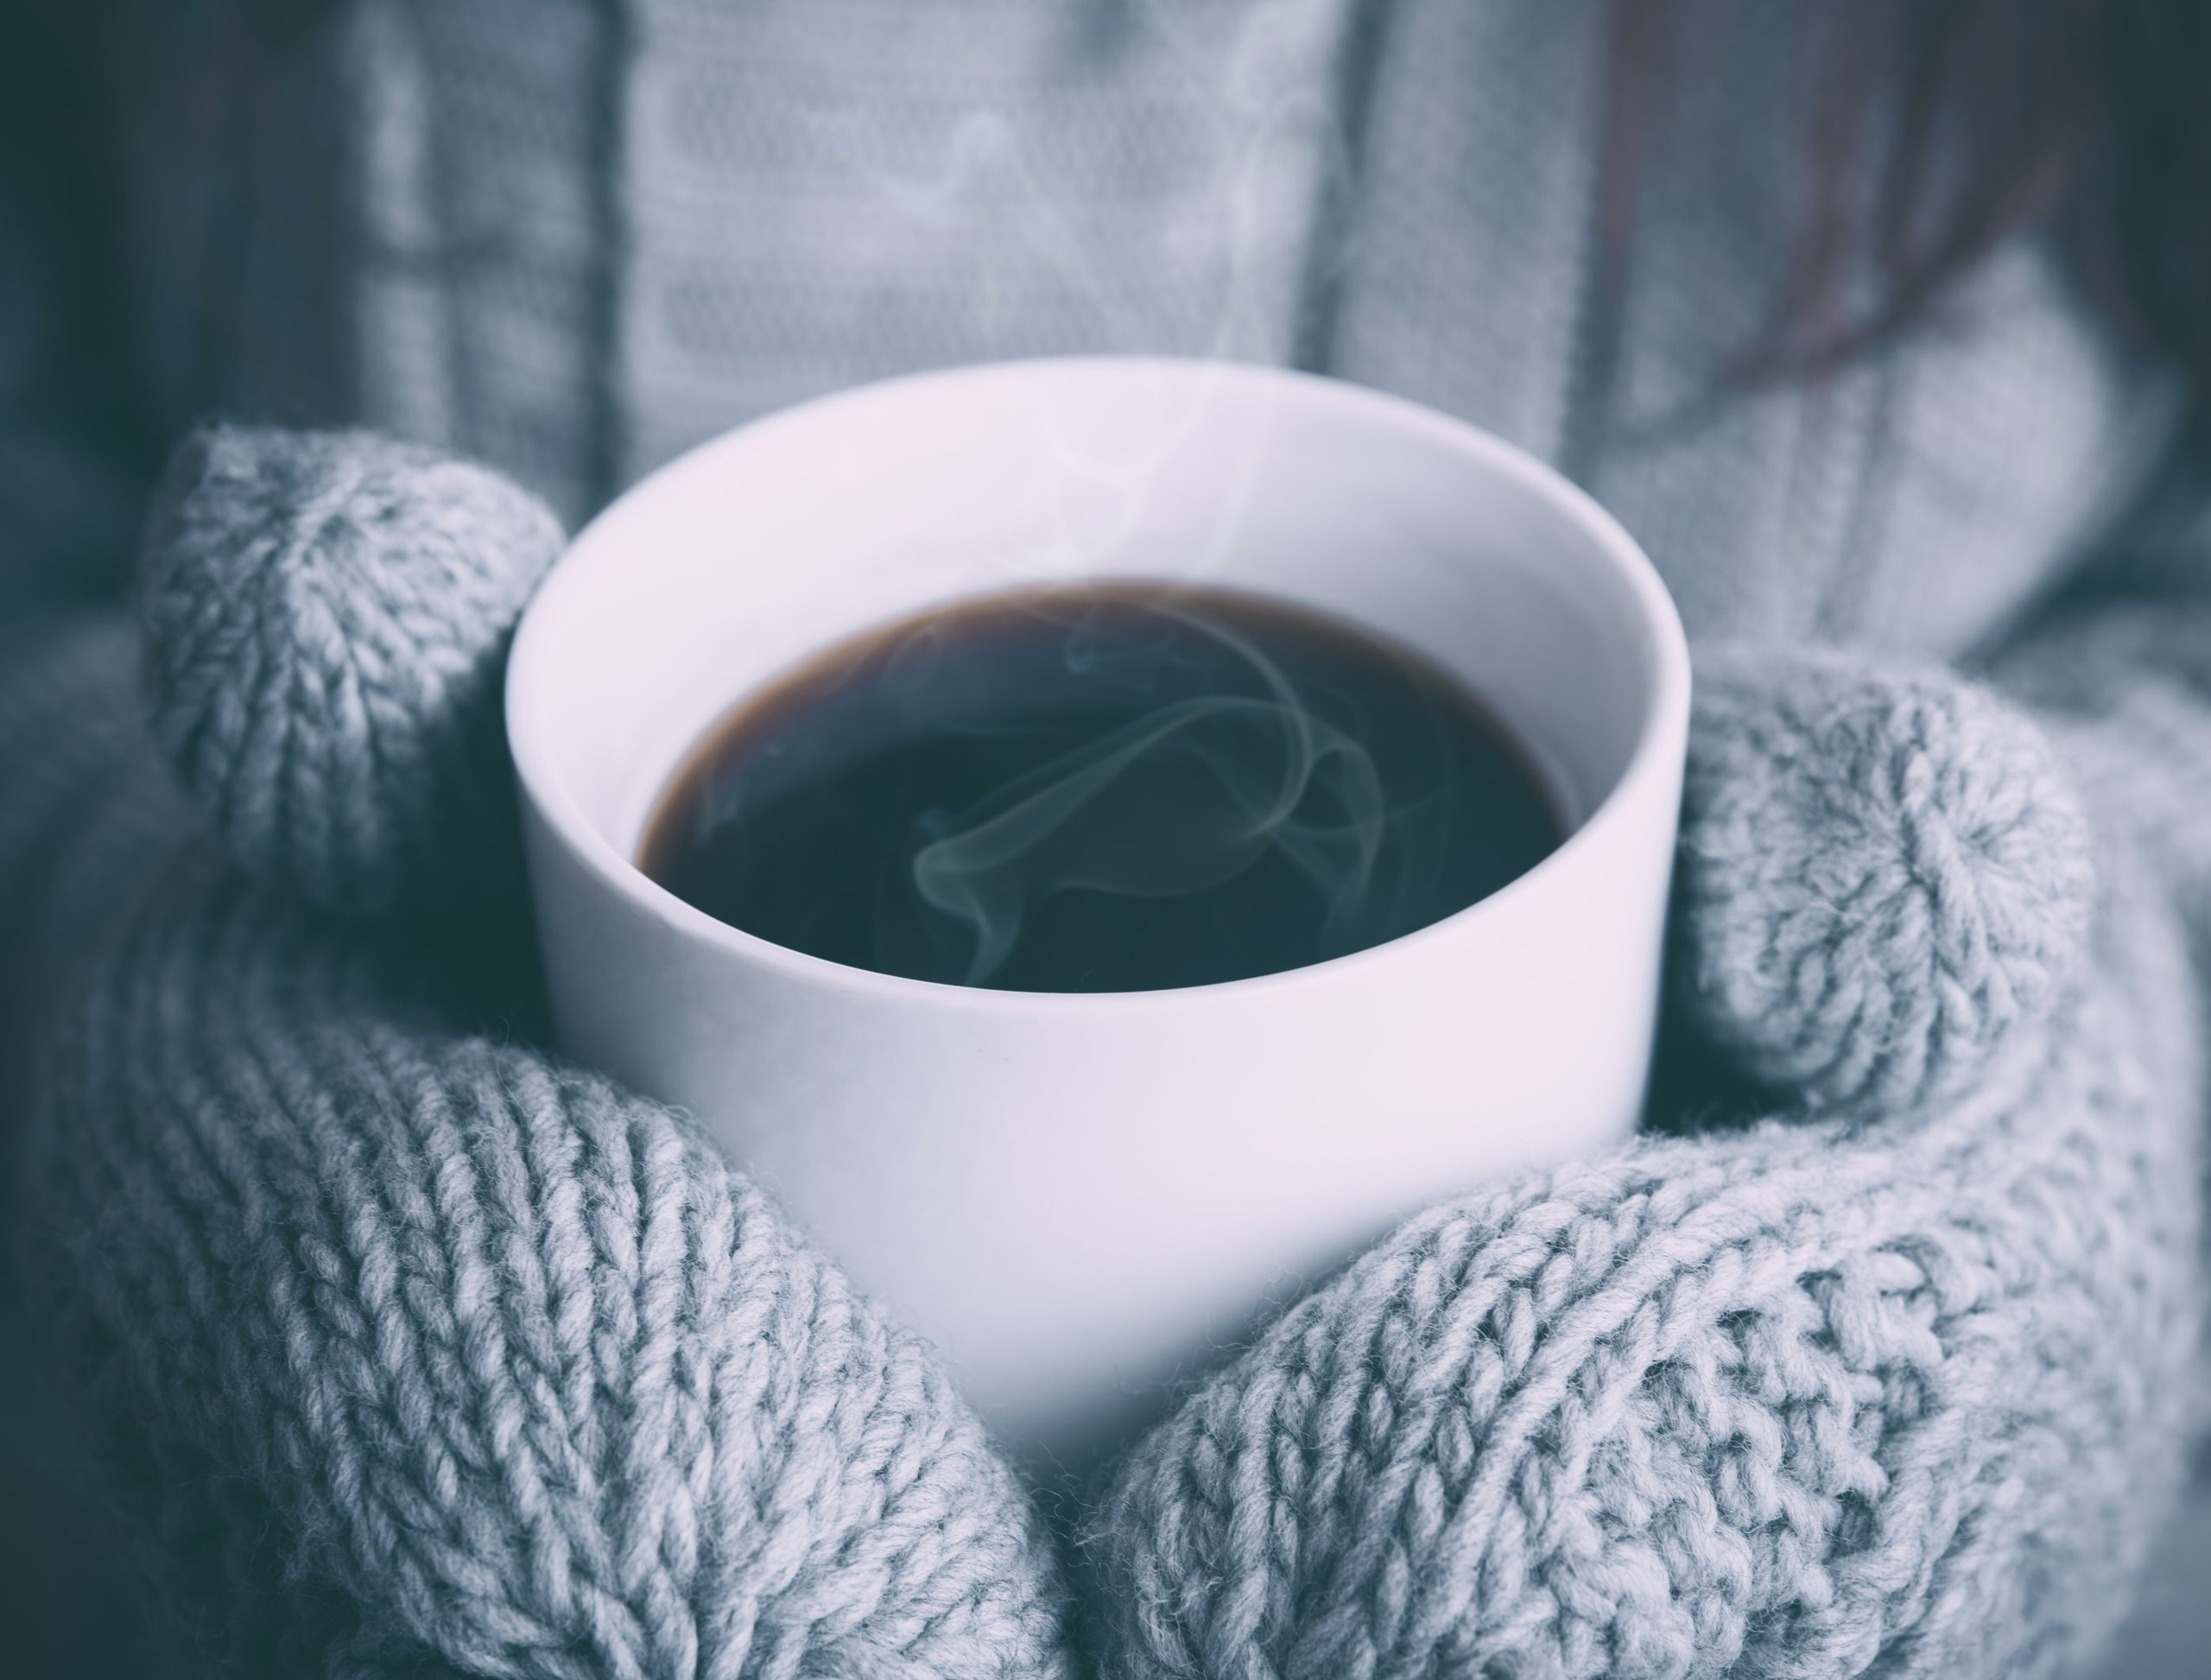 mittened hands hold a mug of coffee